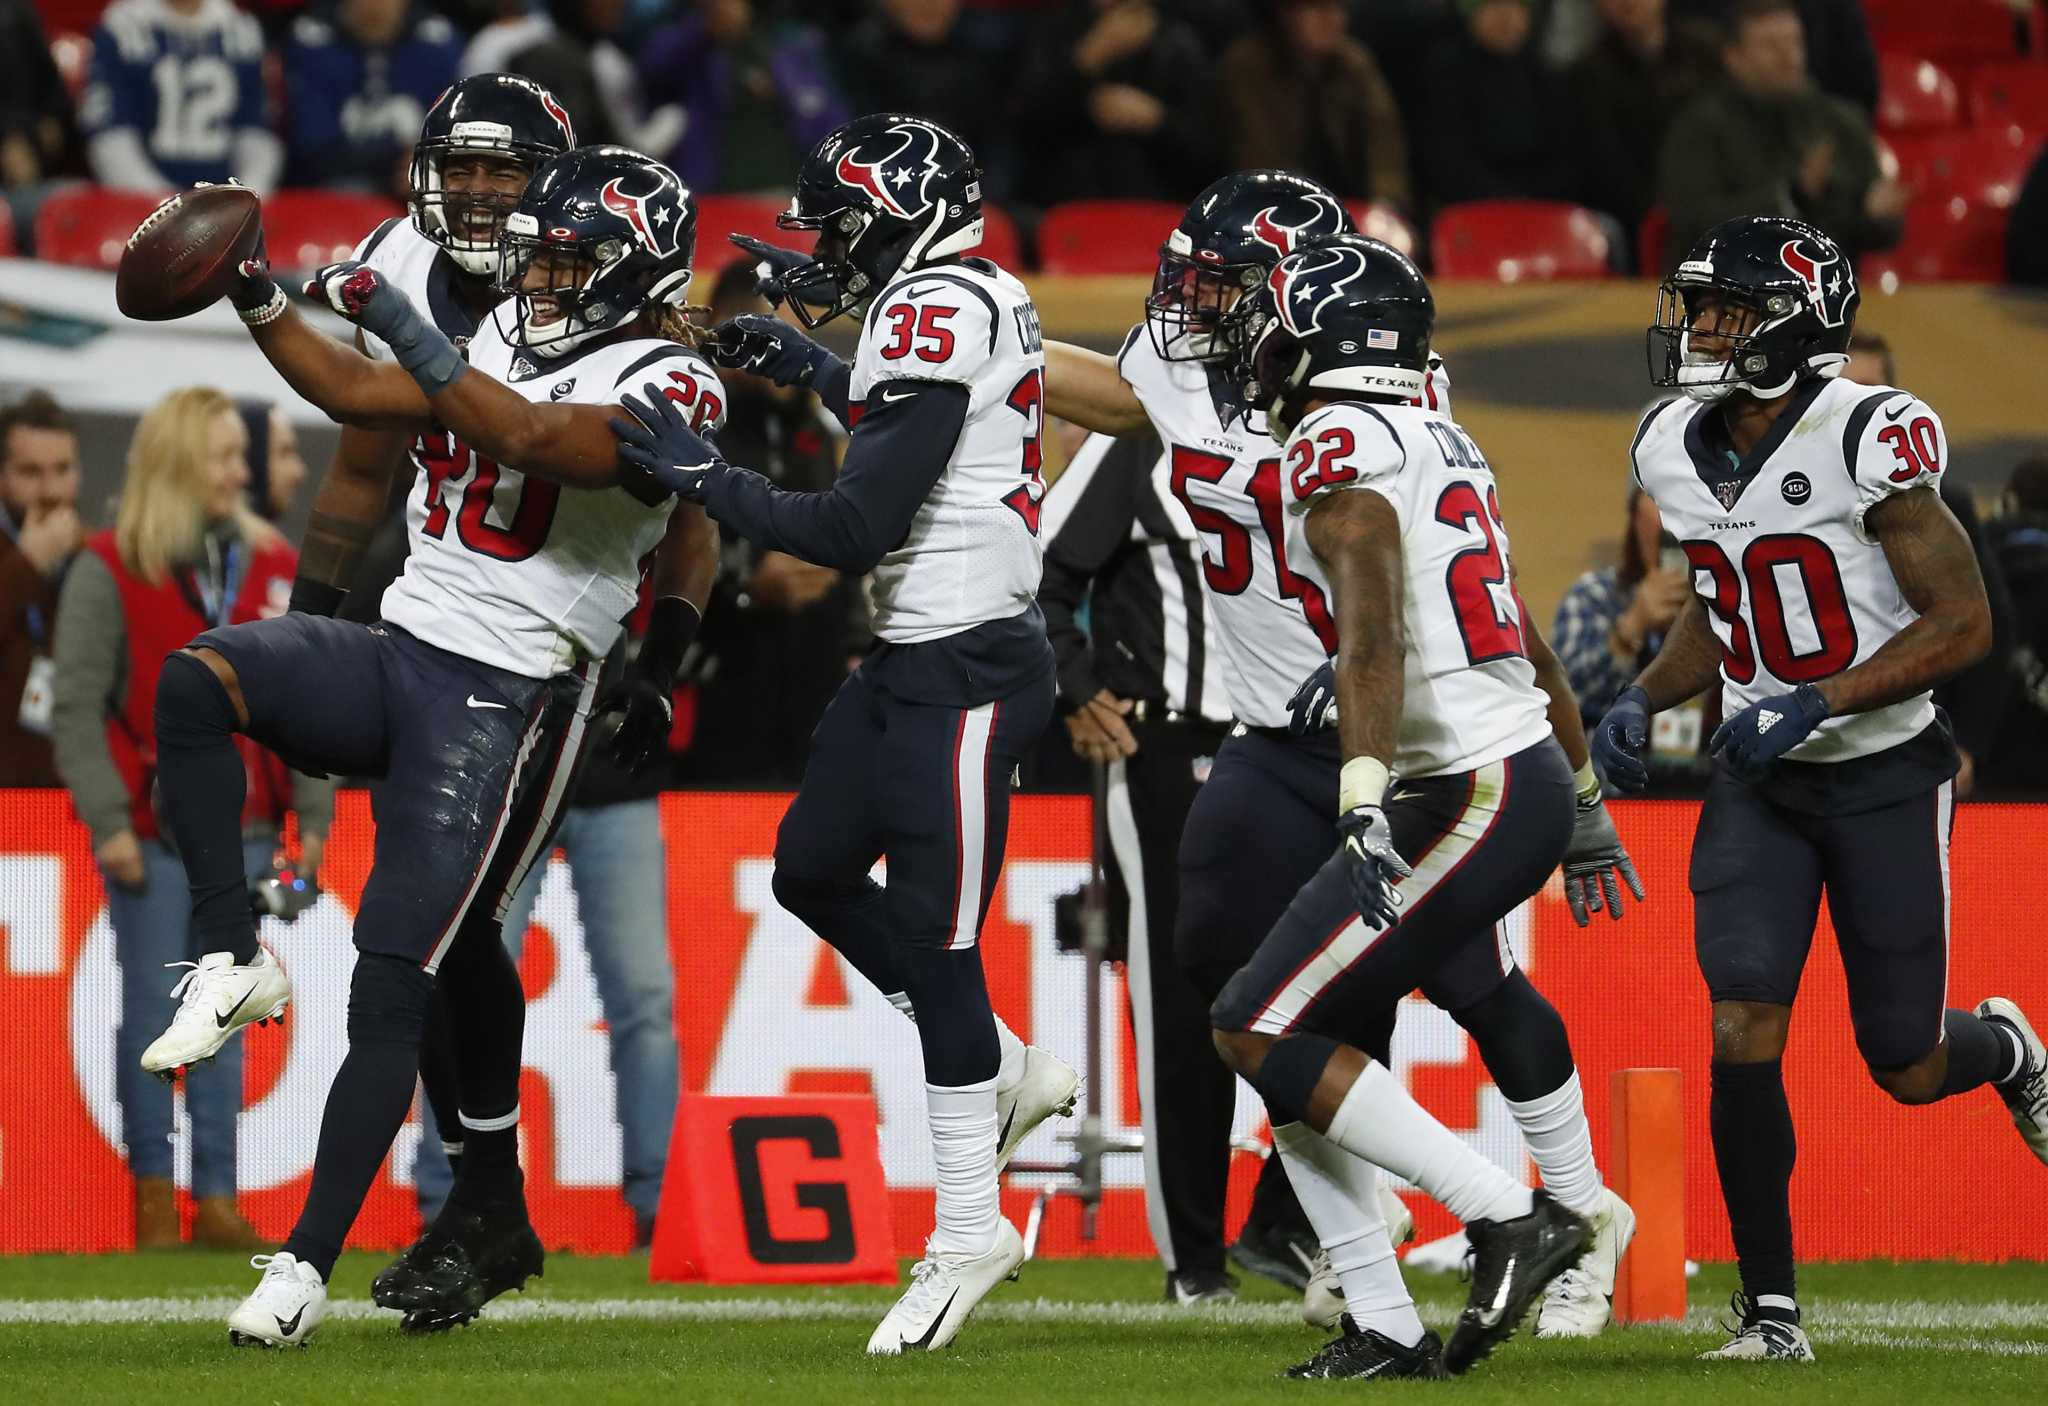 McClain: Texans get a well-timed break before key stretch